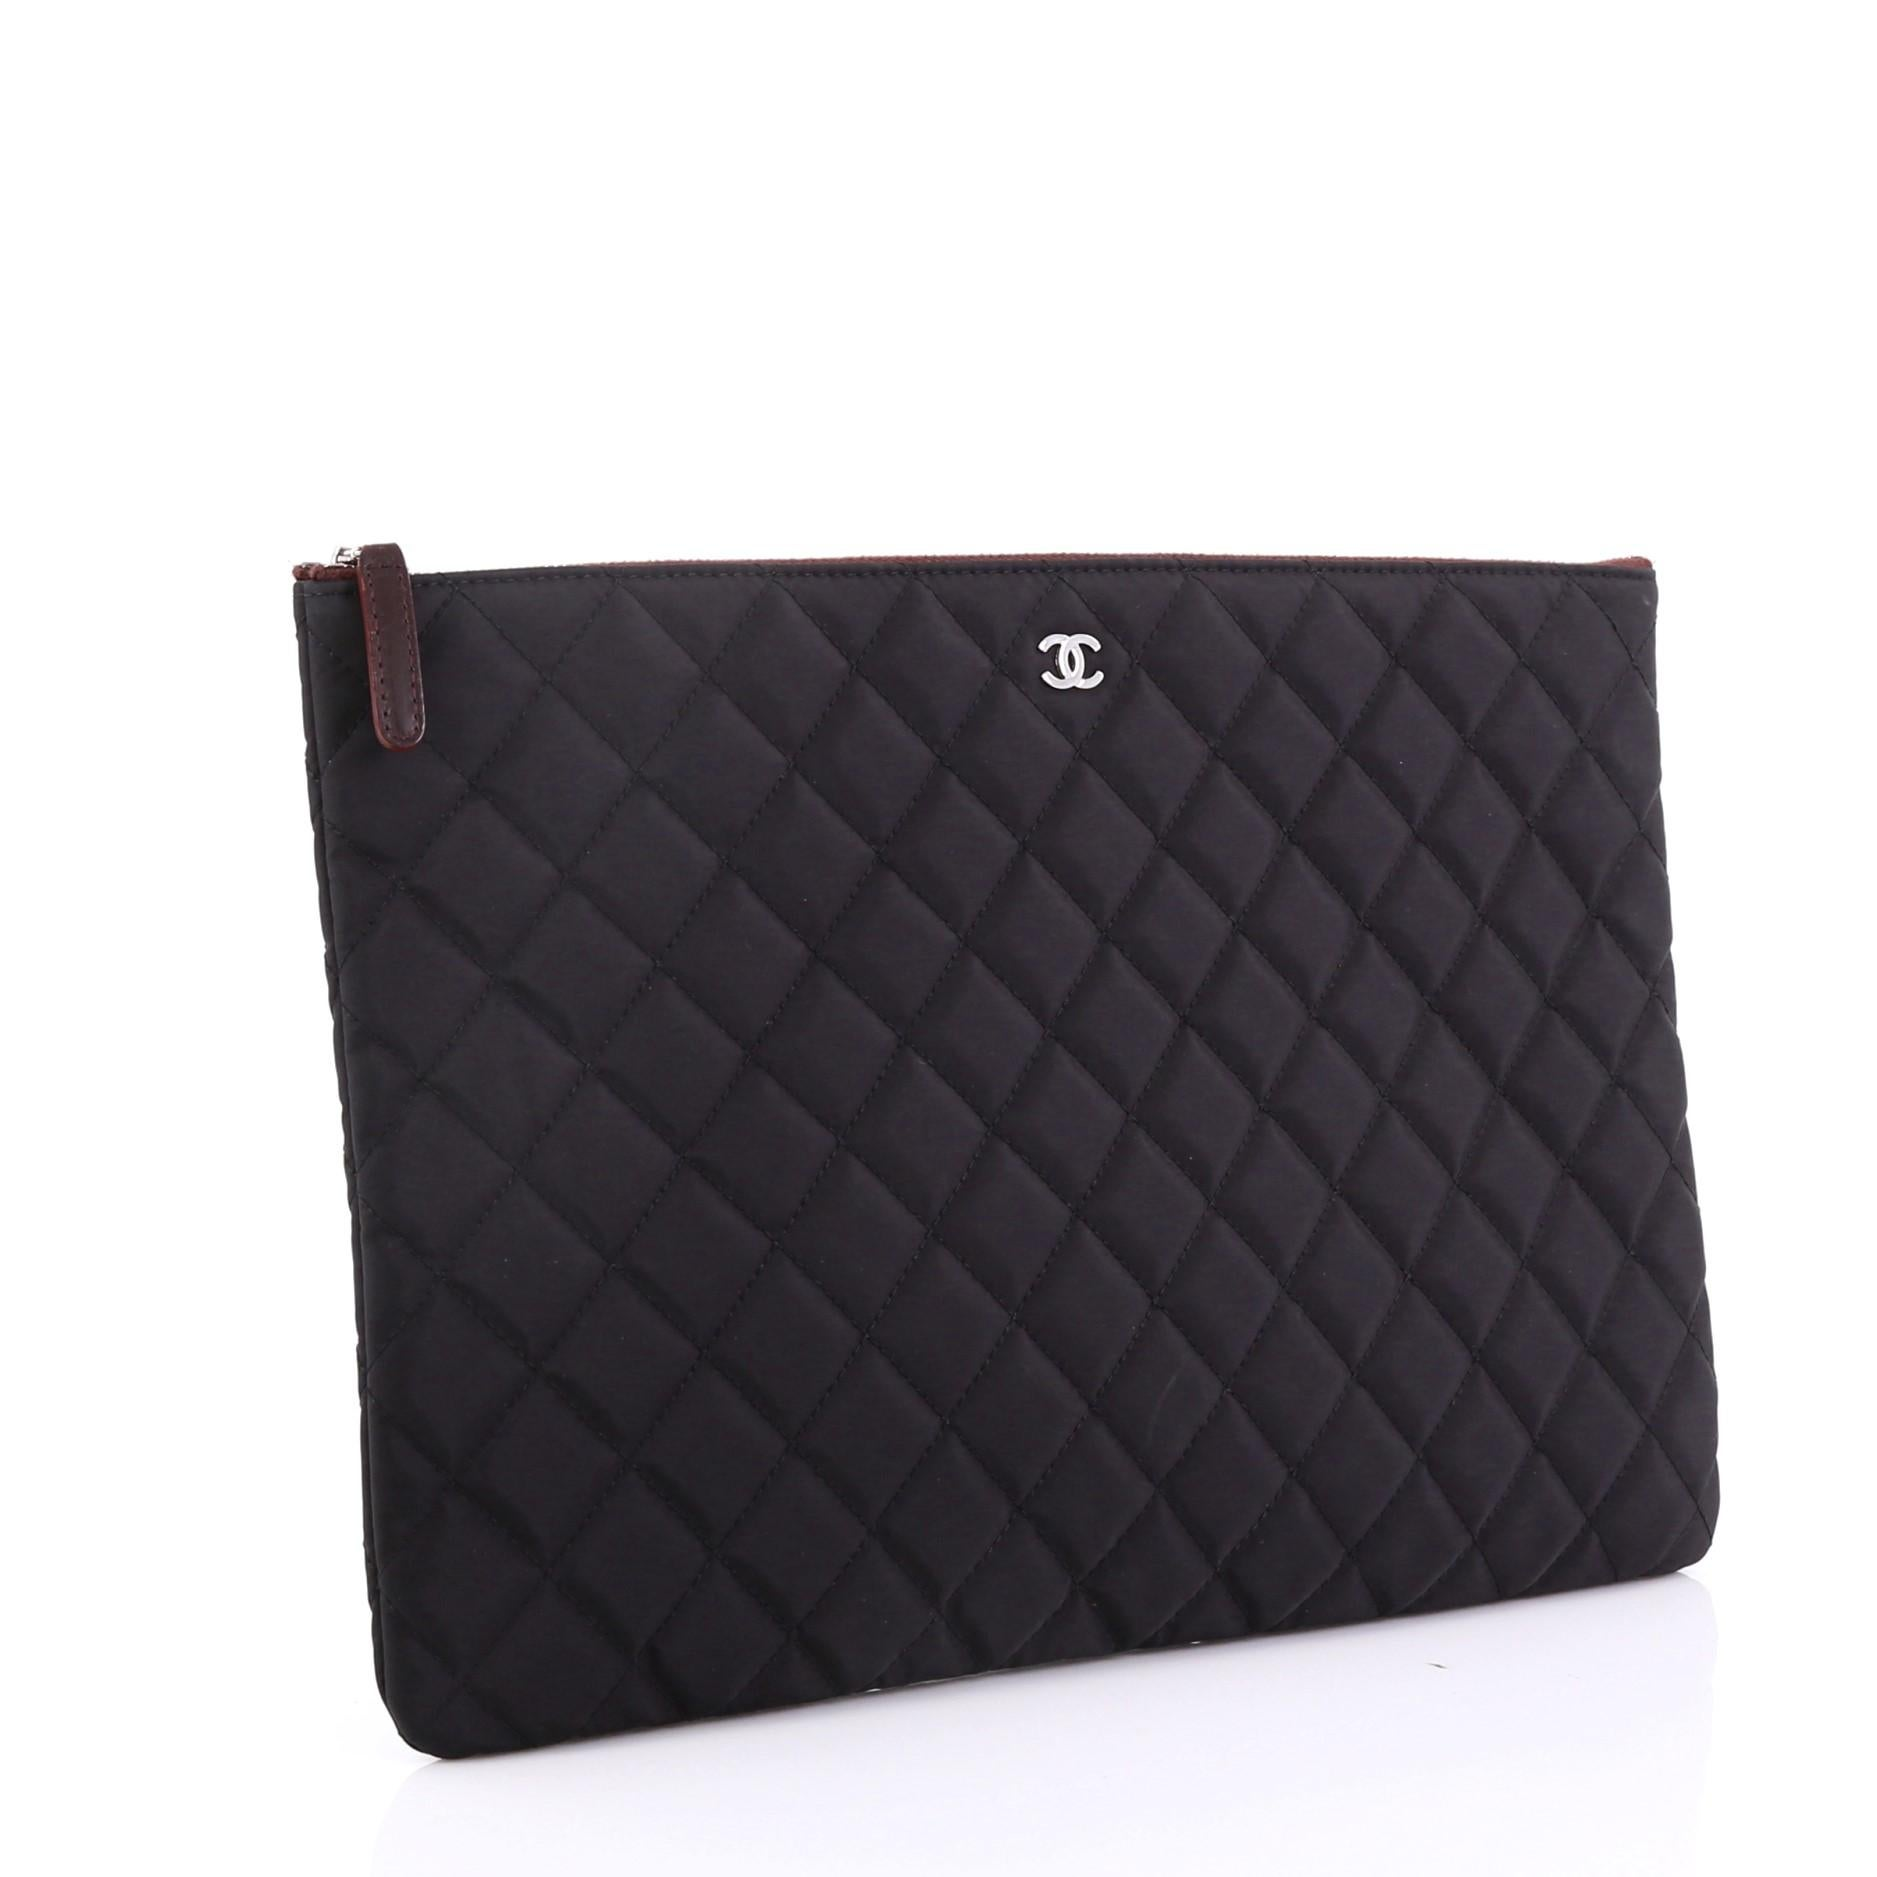 074488cc091849 Chanel O Case Clutch Quilted Nylon Large at 1stdibs